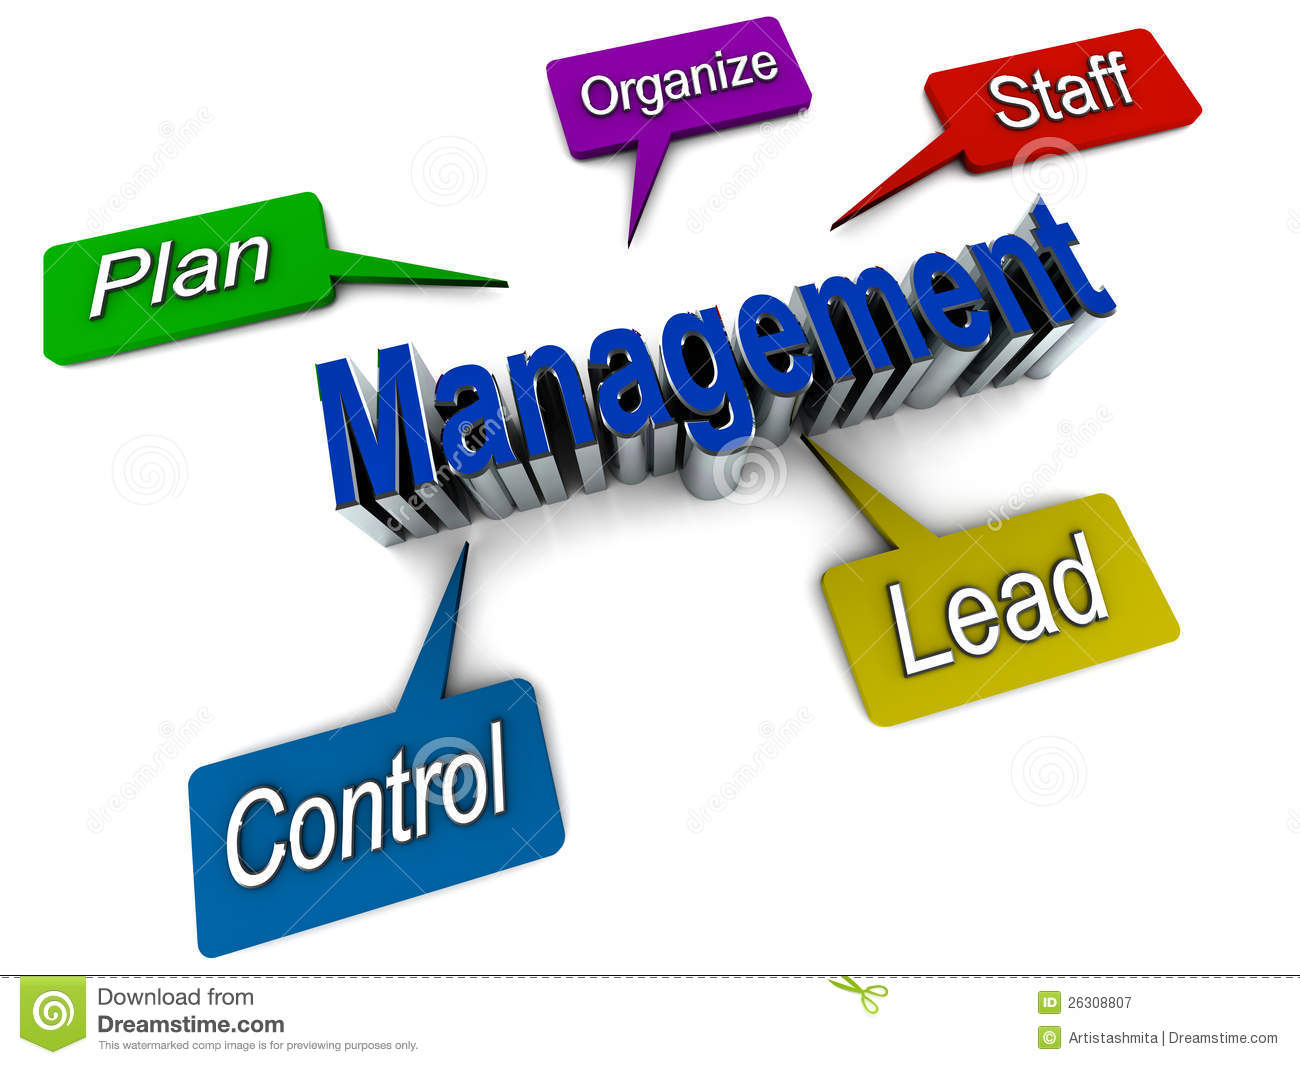 application of management functions This article explains the administrative theory of the five functions of management by henri fayol in a practical way after reading you will understand the basics of these powerful principles of management.